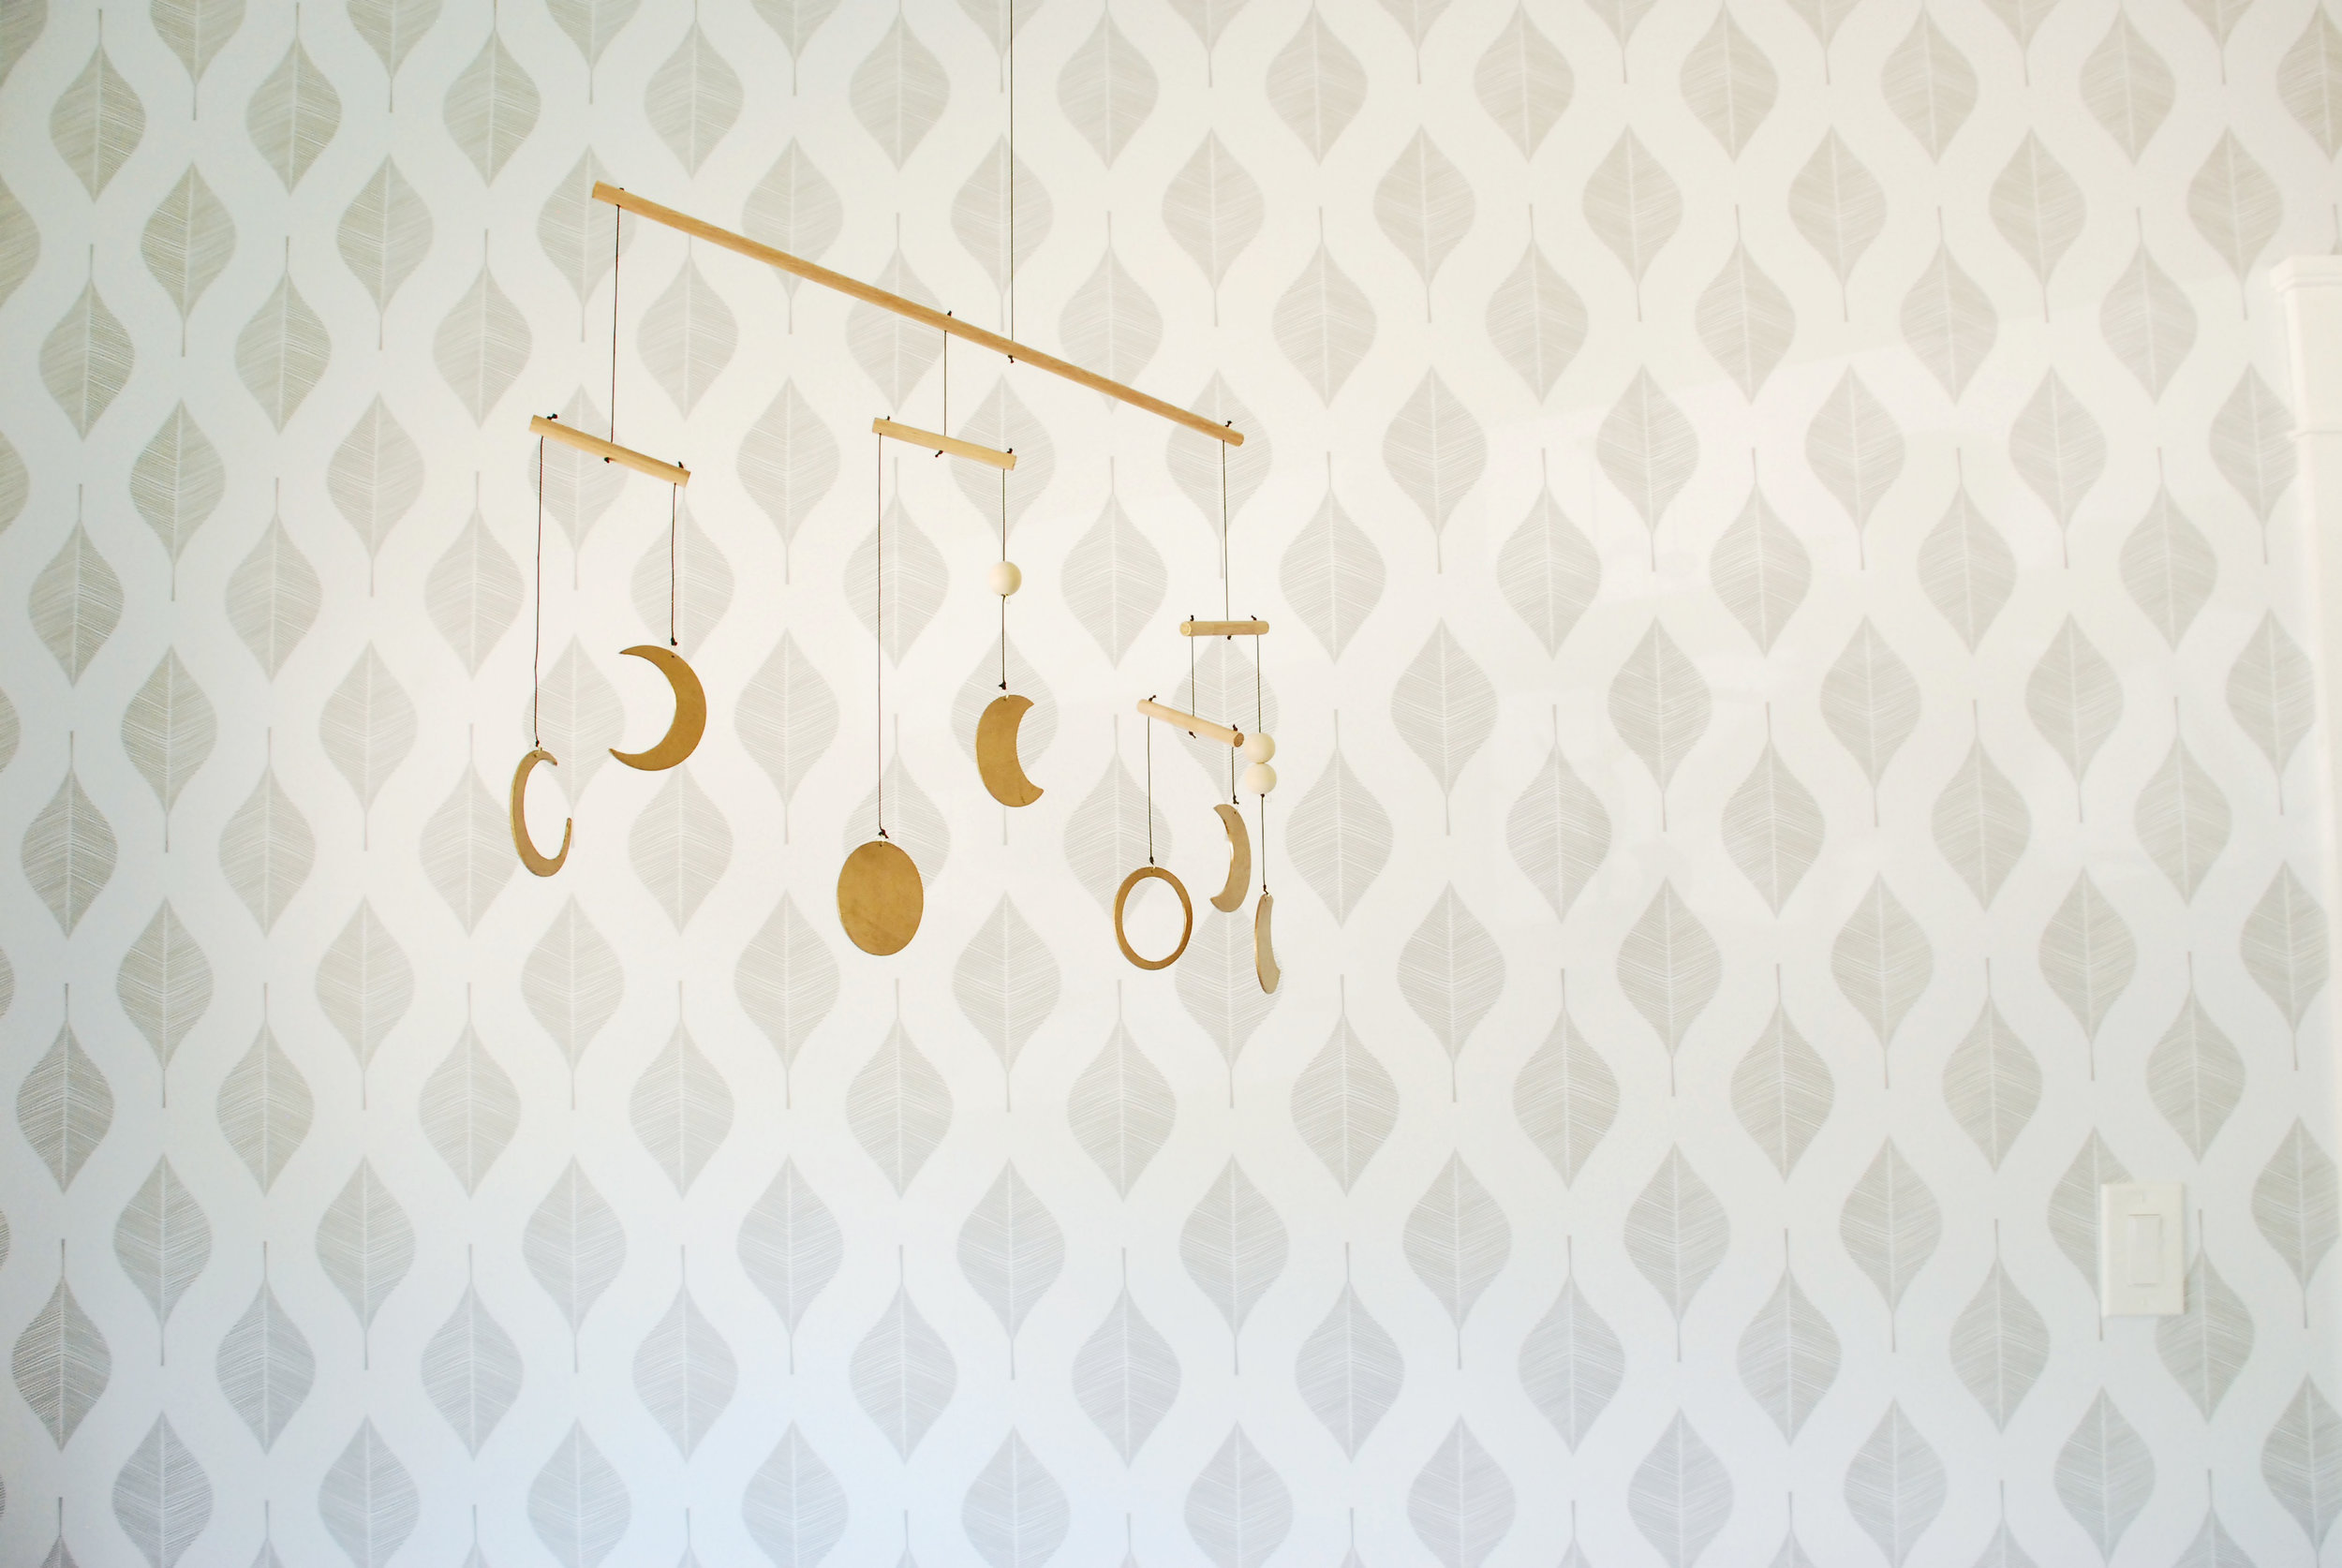 Wallpaper wall in baby nursery by Stay Interiors